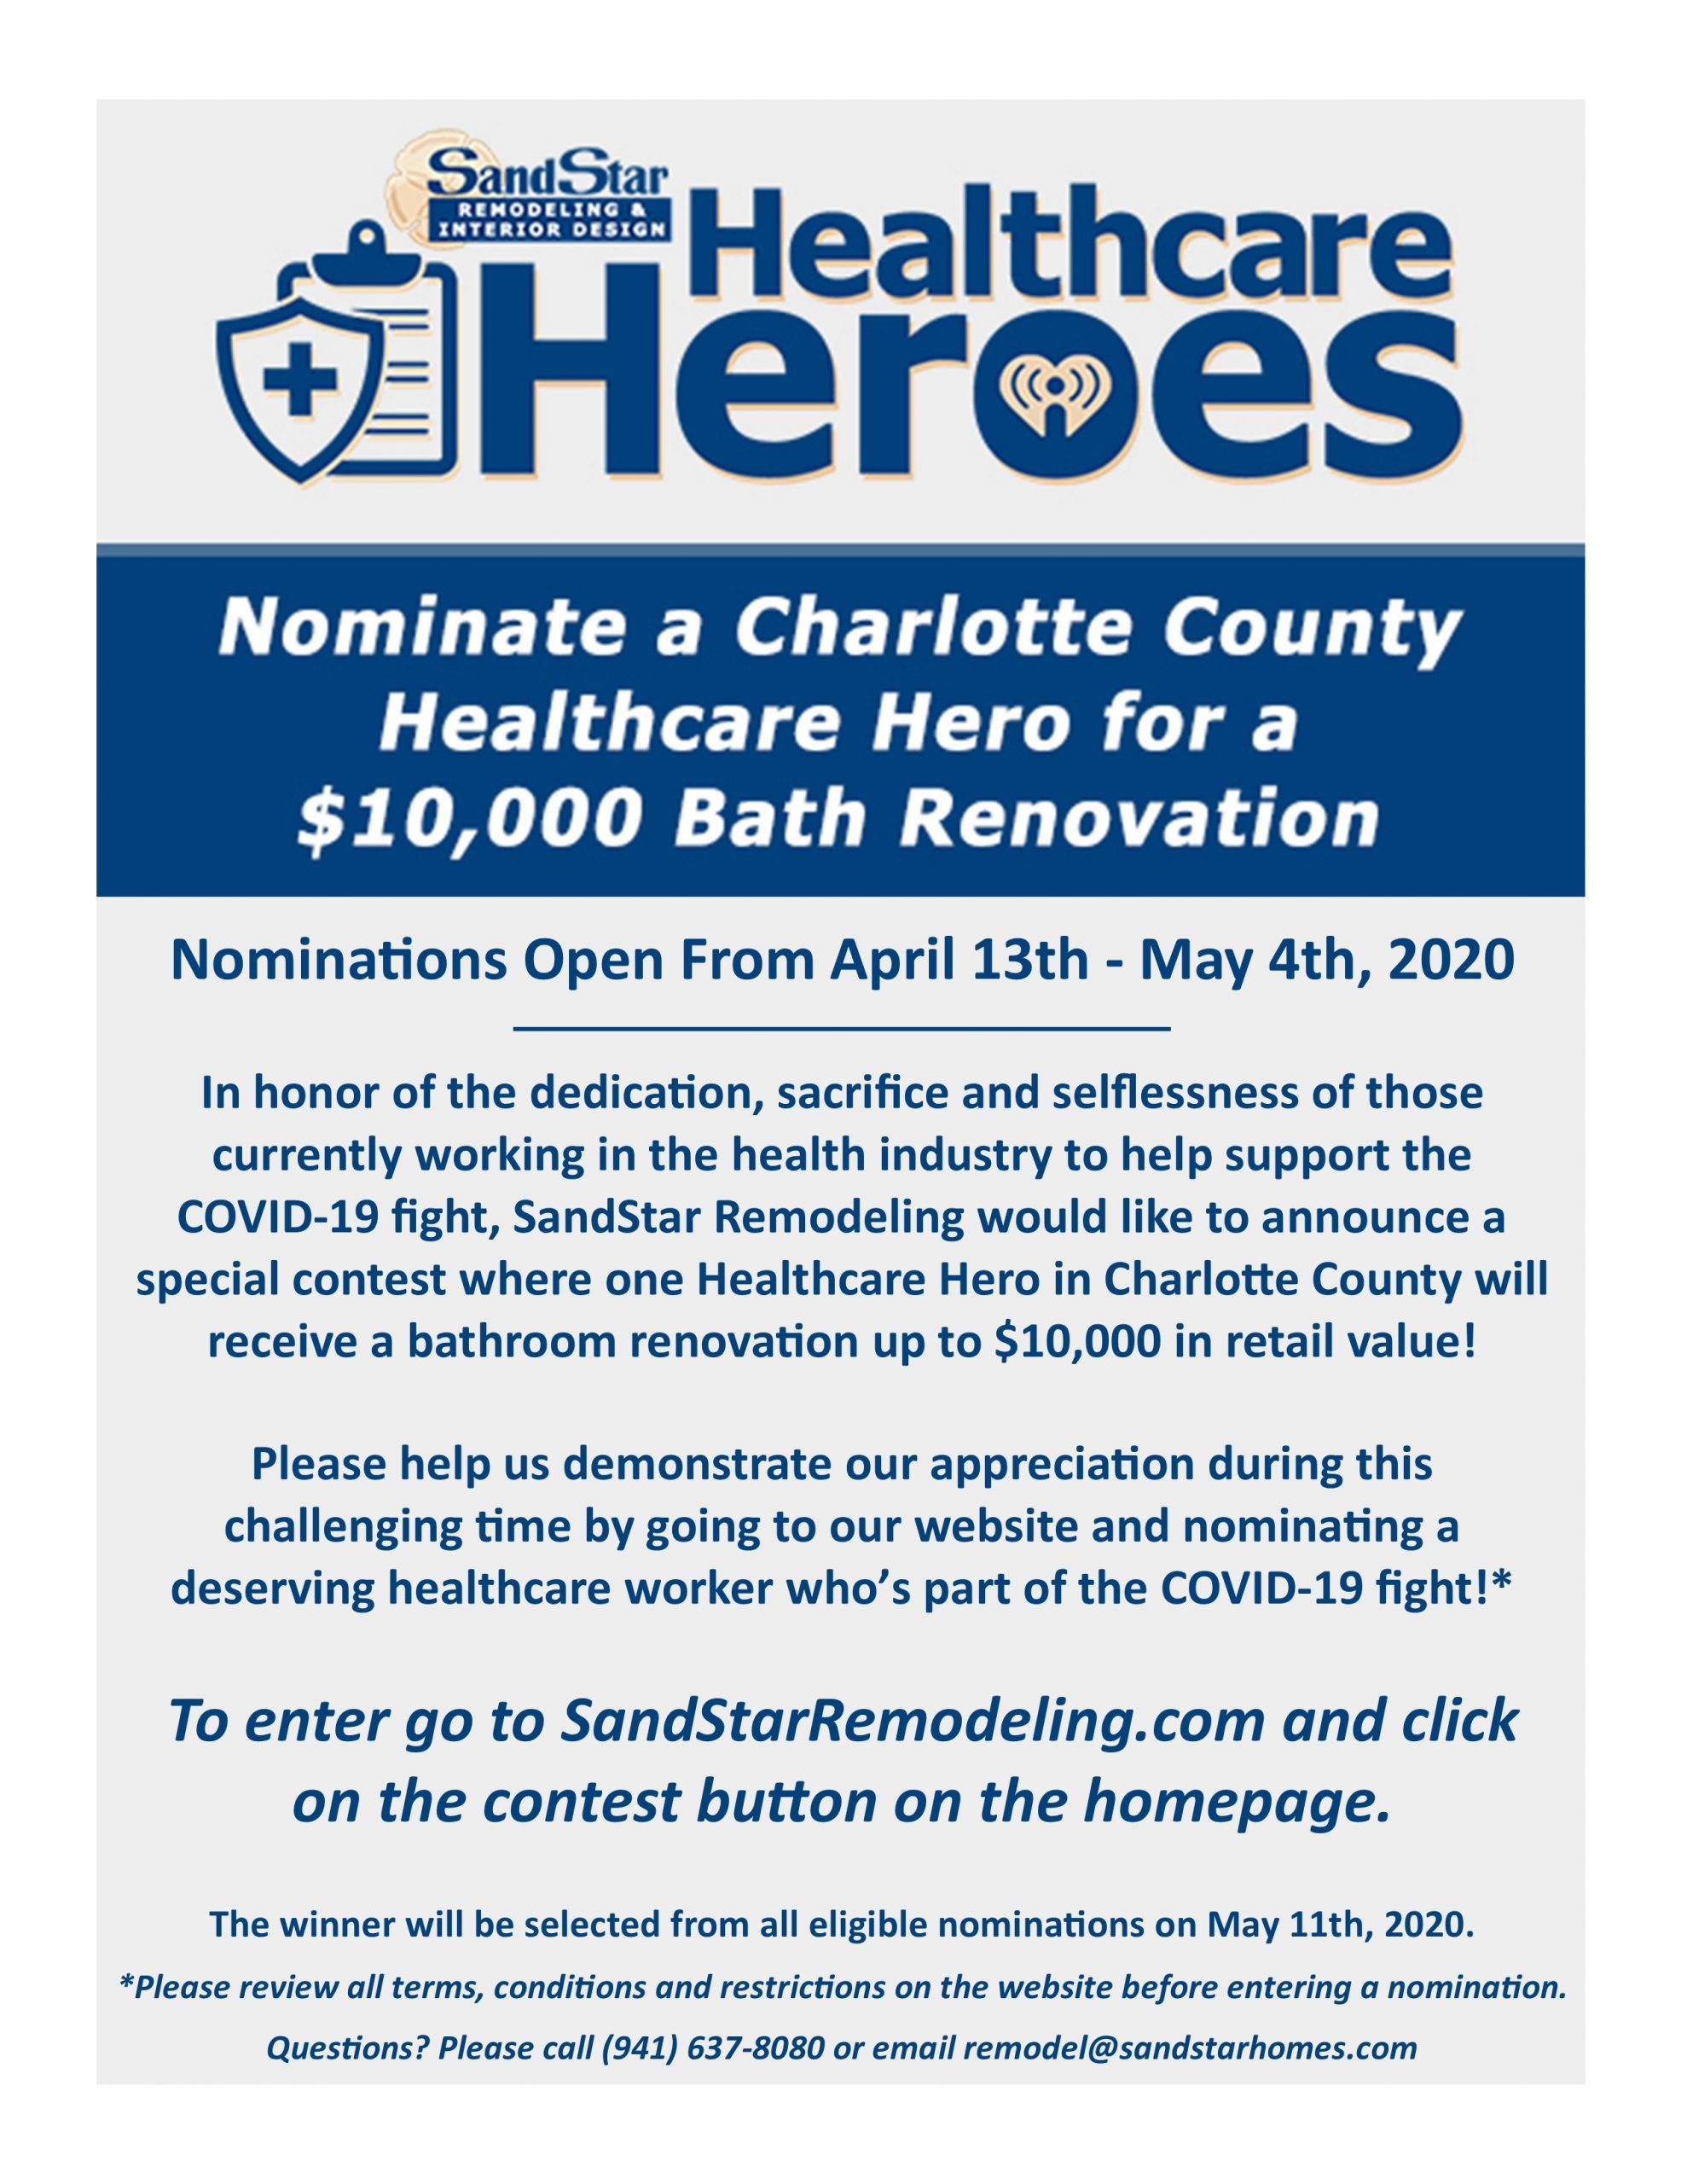 Charlotte County Healthcare Heroes!